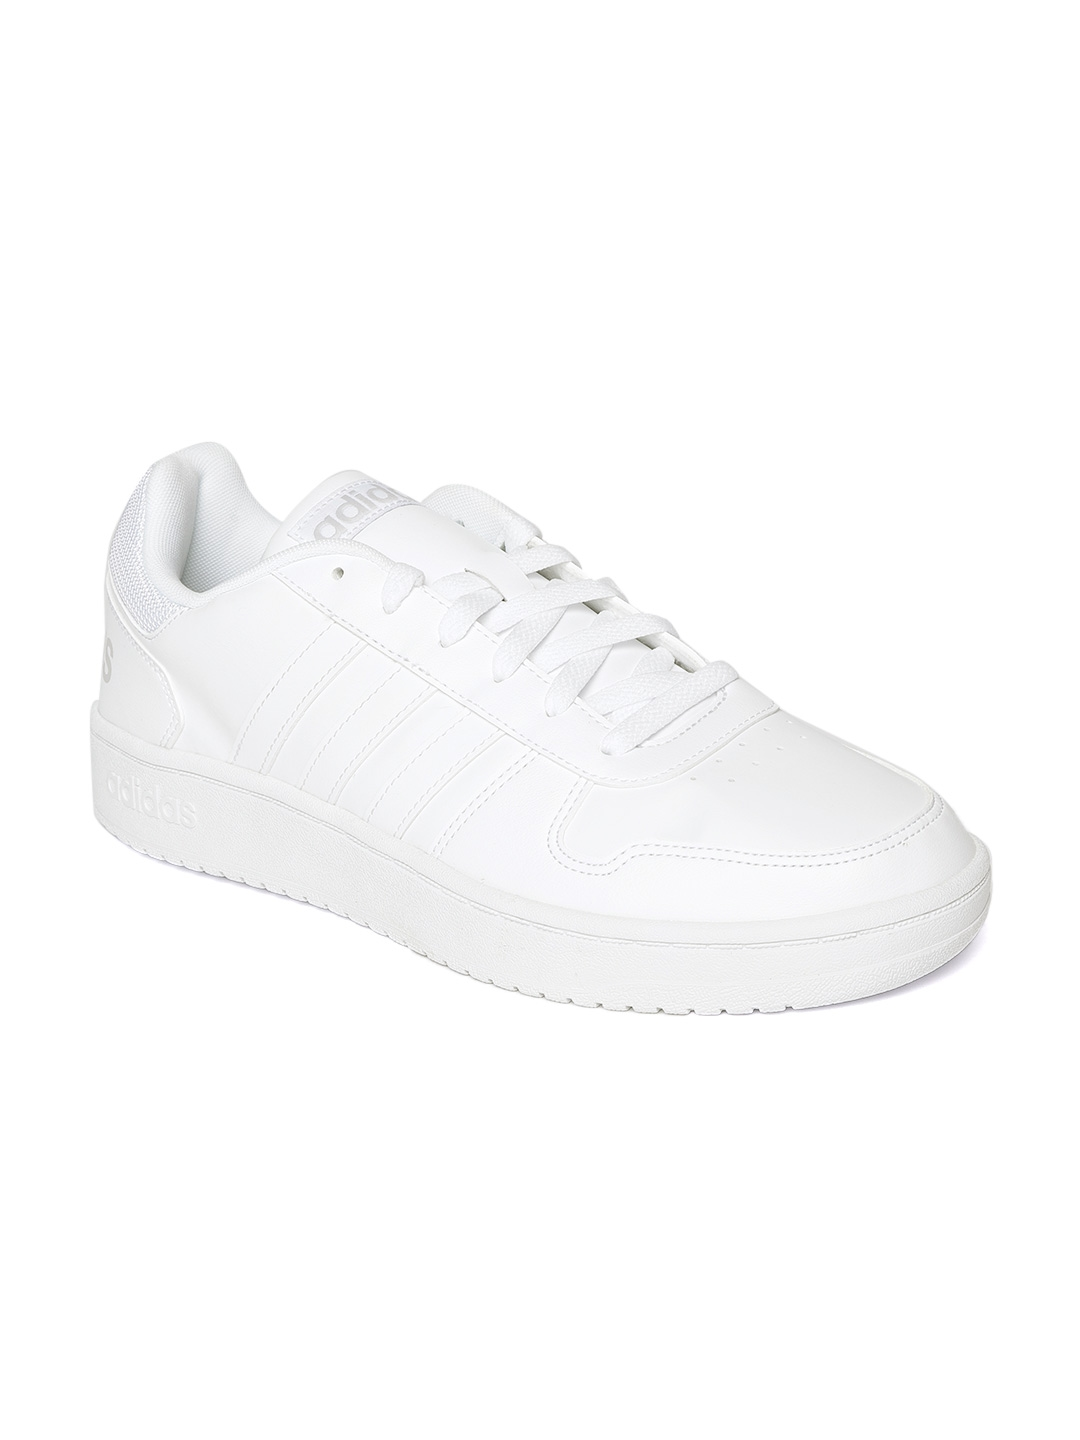 43b5e0a97881 Buy ADIDAS Men White Hoops 2.0 Basketball Shoes - Sports Shoes for ...